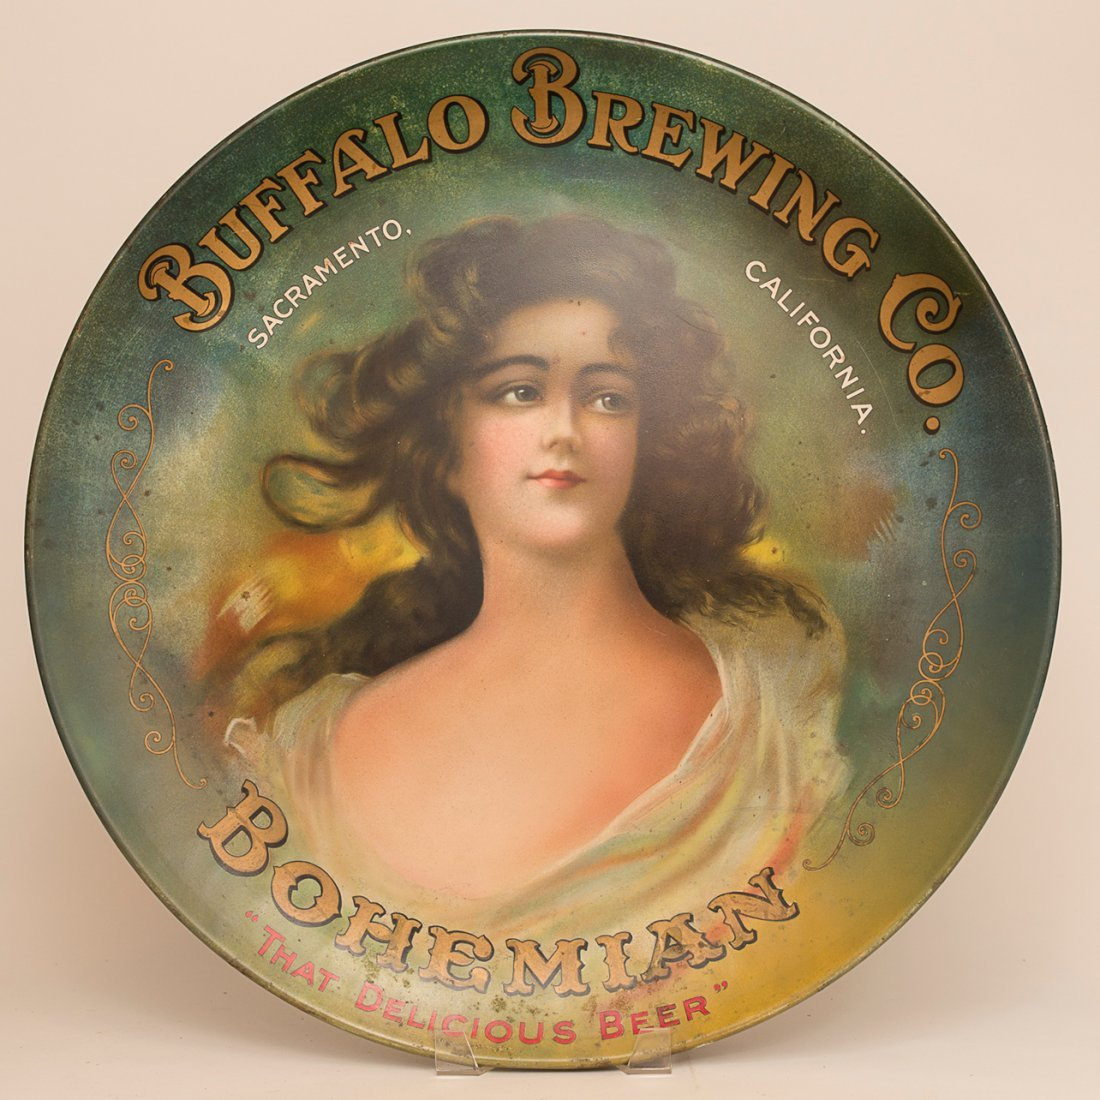 Buffalo Brewing Co. Bohemian Beer Charger